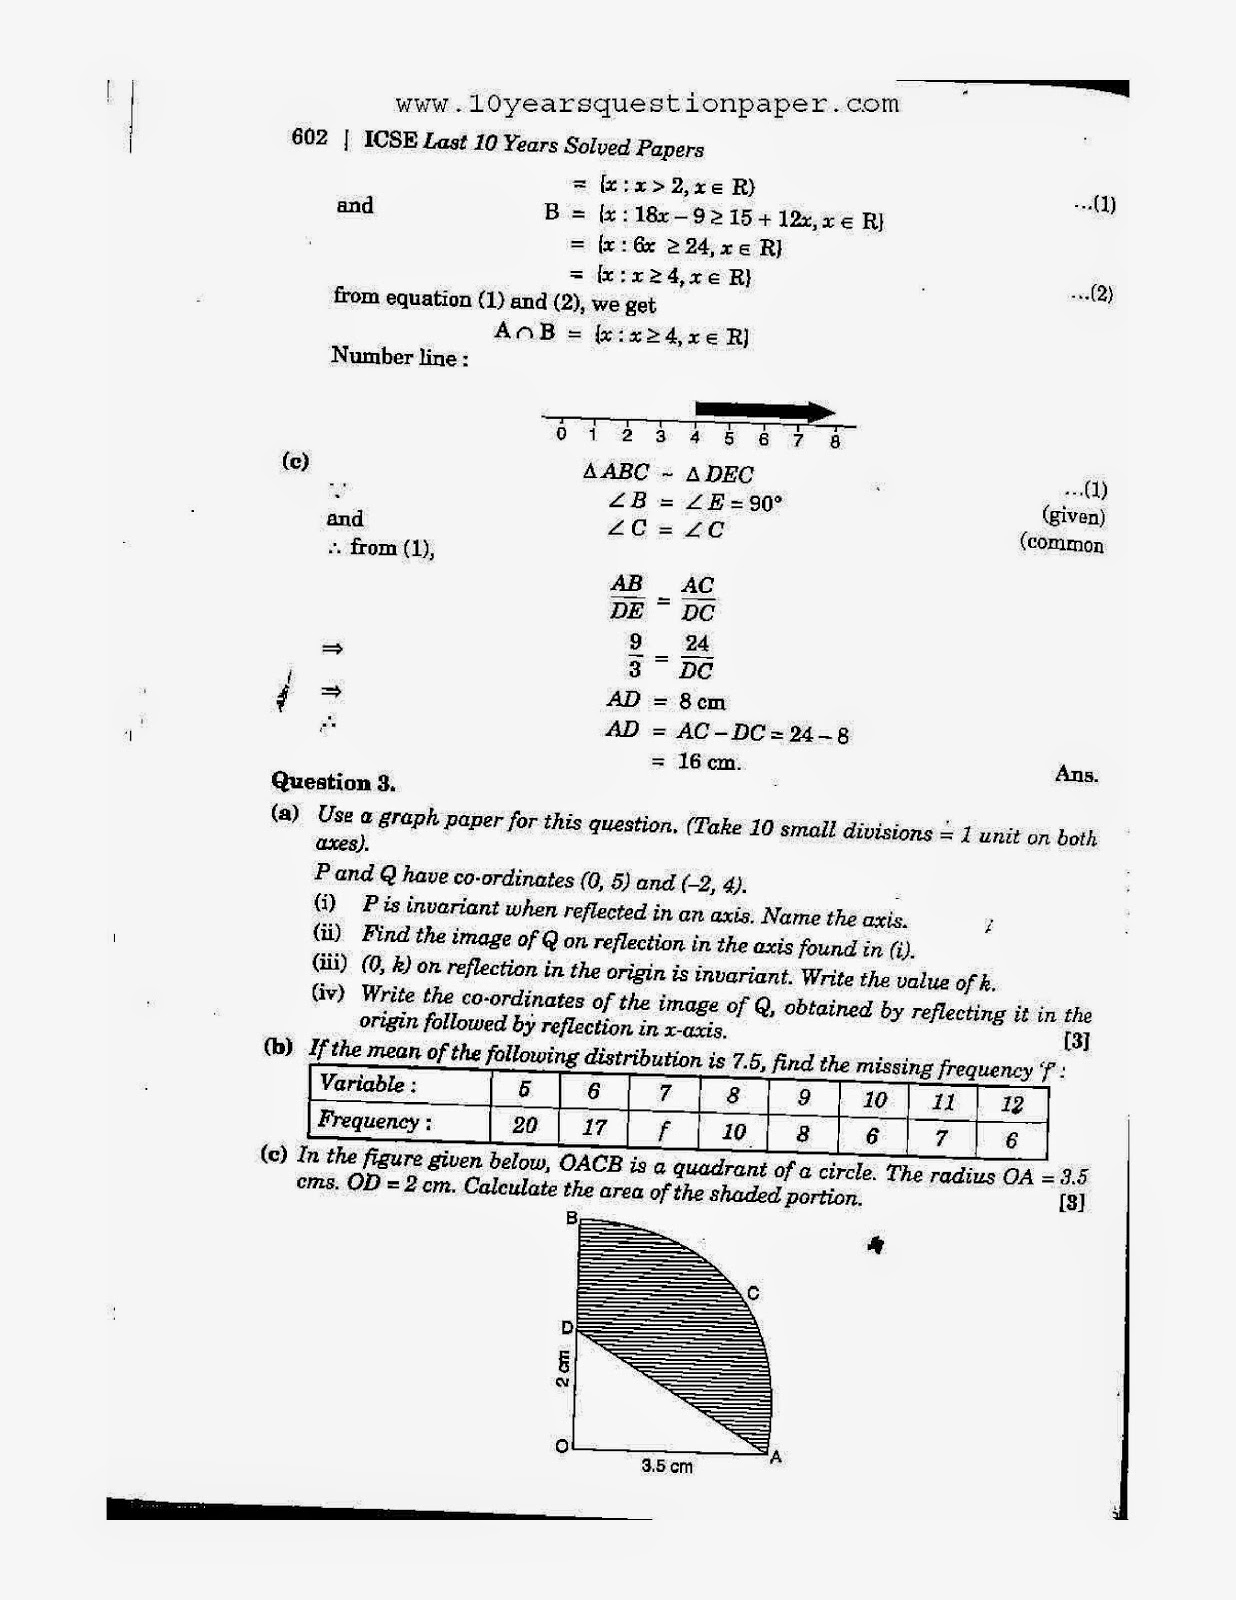 Icse 2005 mathematics solved board paper class 10 10 years icse class 10th mathematics solved question paper 2005 malvernweather Images